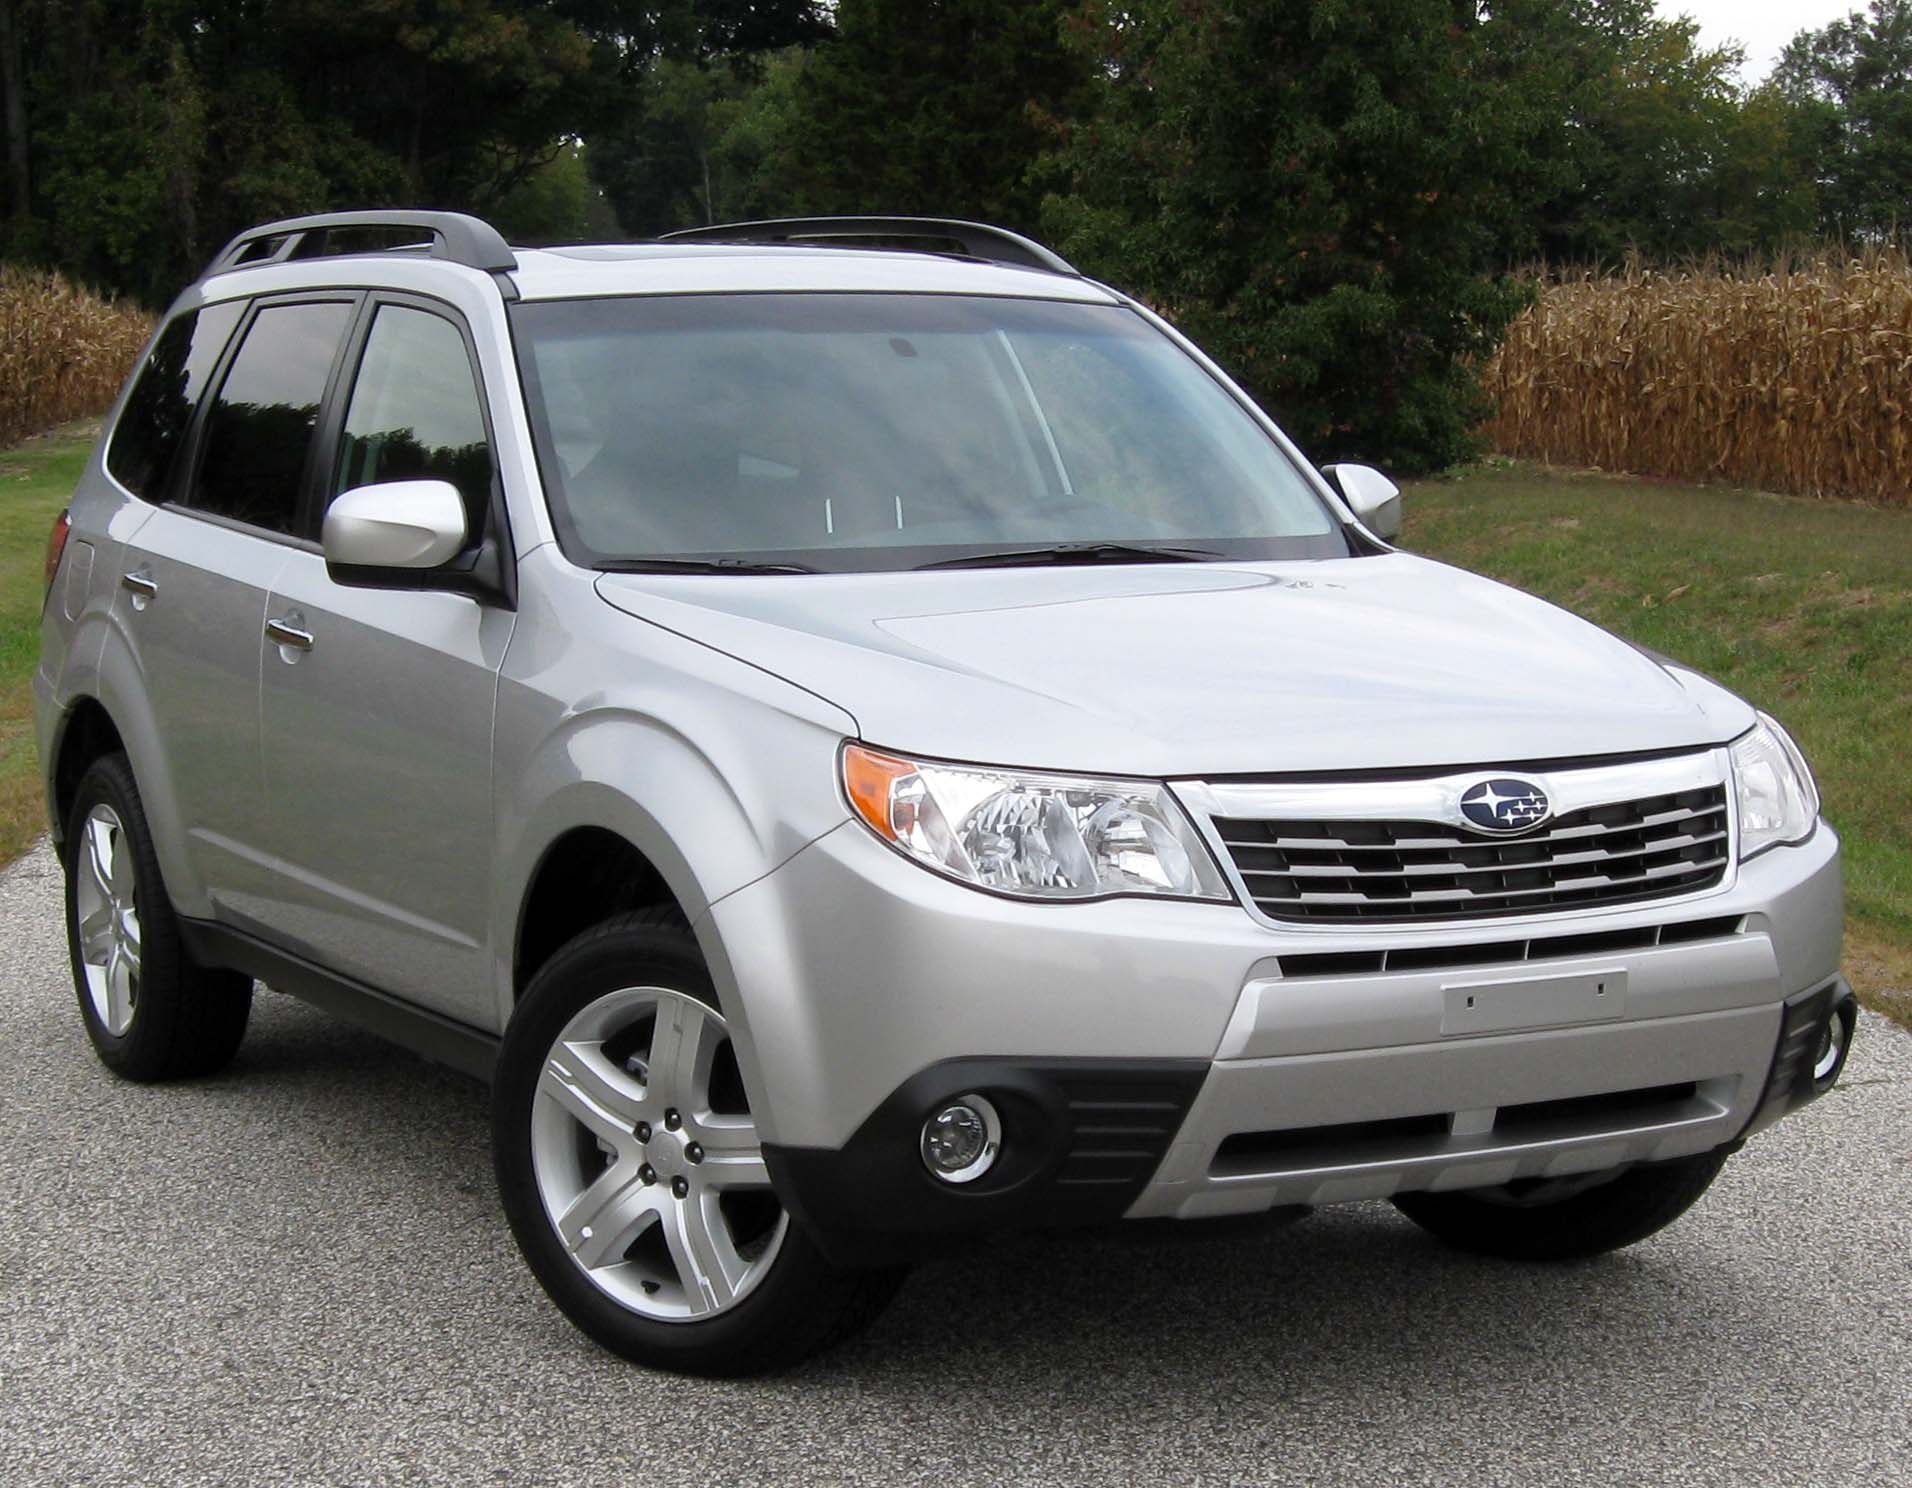 subaru forester 2.5x limited-pic. 1